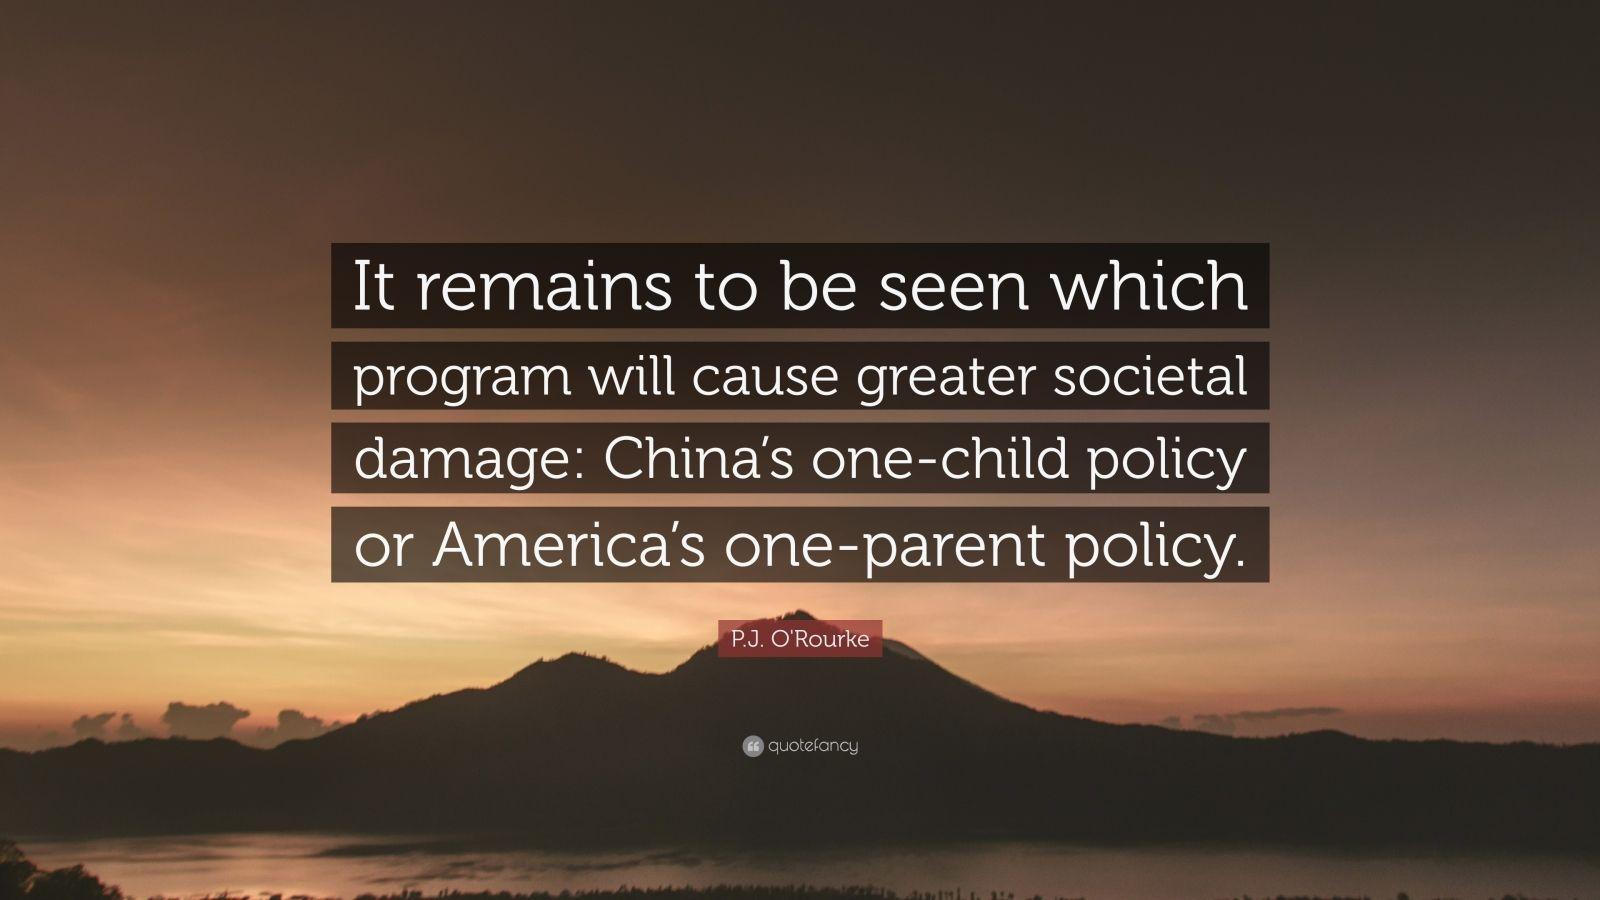 """P.J. O'Rourke Quote: """"It remains to be seen which program will cause greater societal damage: China's one-child policy or America's one-parent policy."""""""